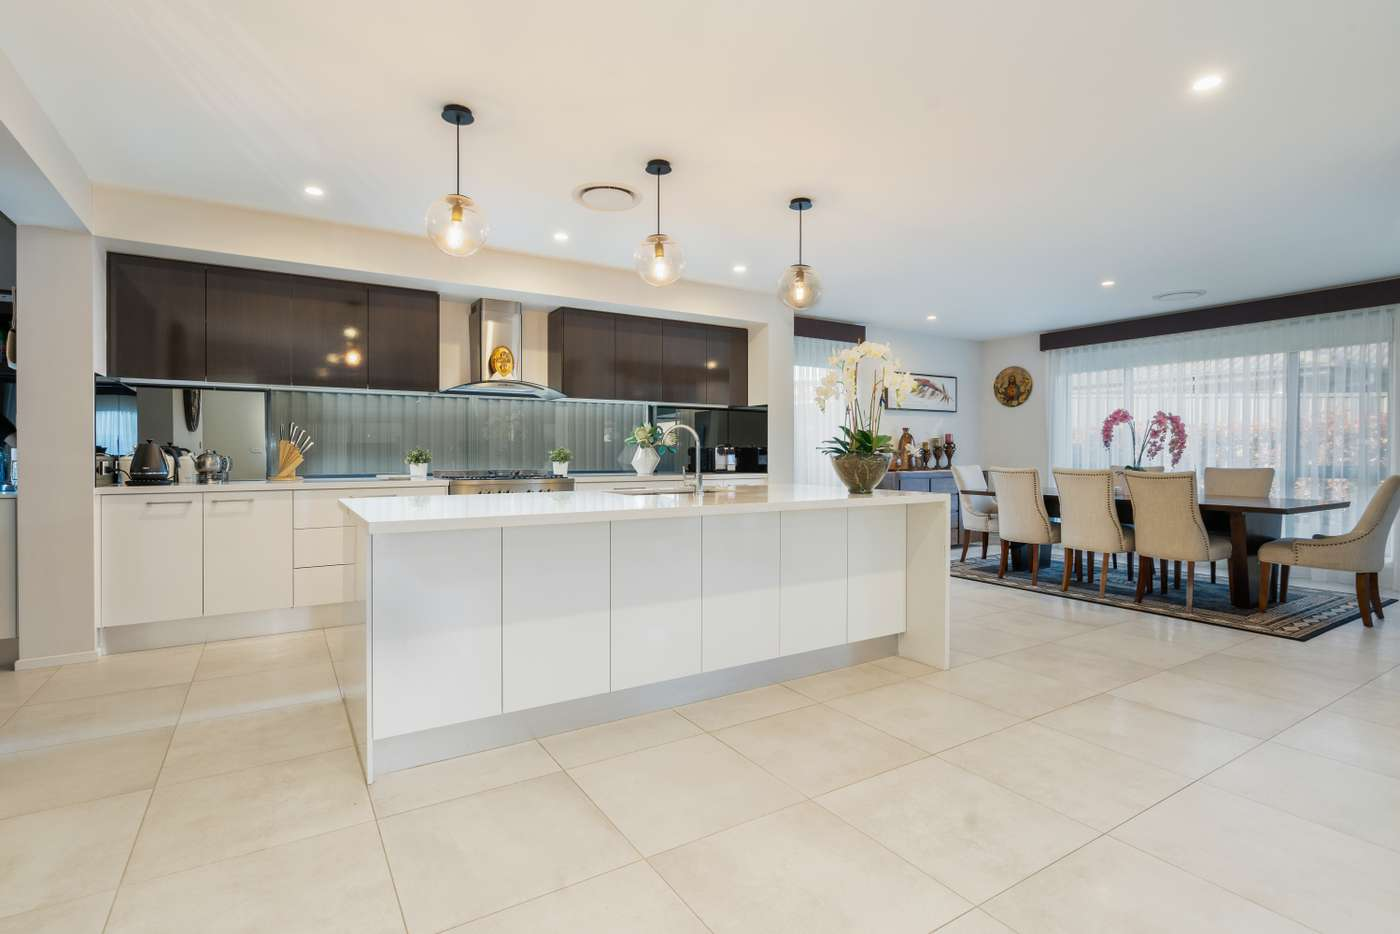 Fifth view of Homely house listing, 17 Patrol st, Leppington NSW 2179